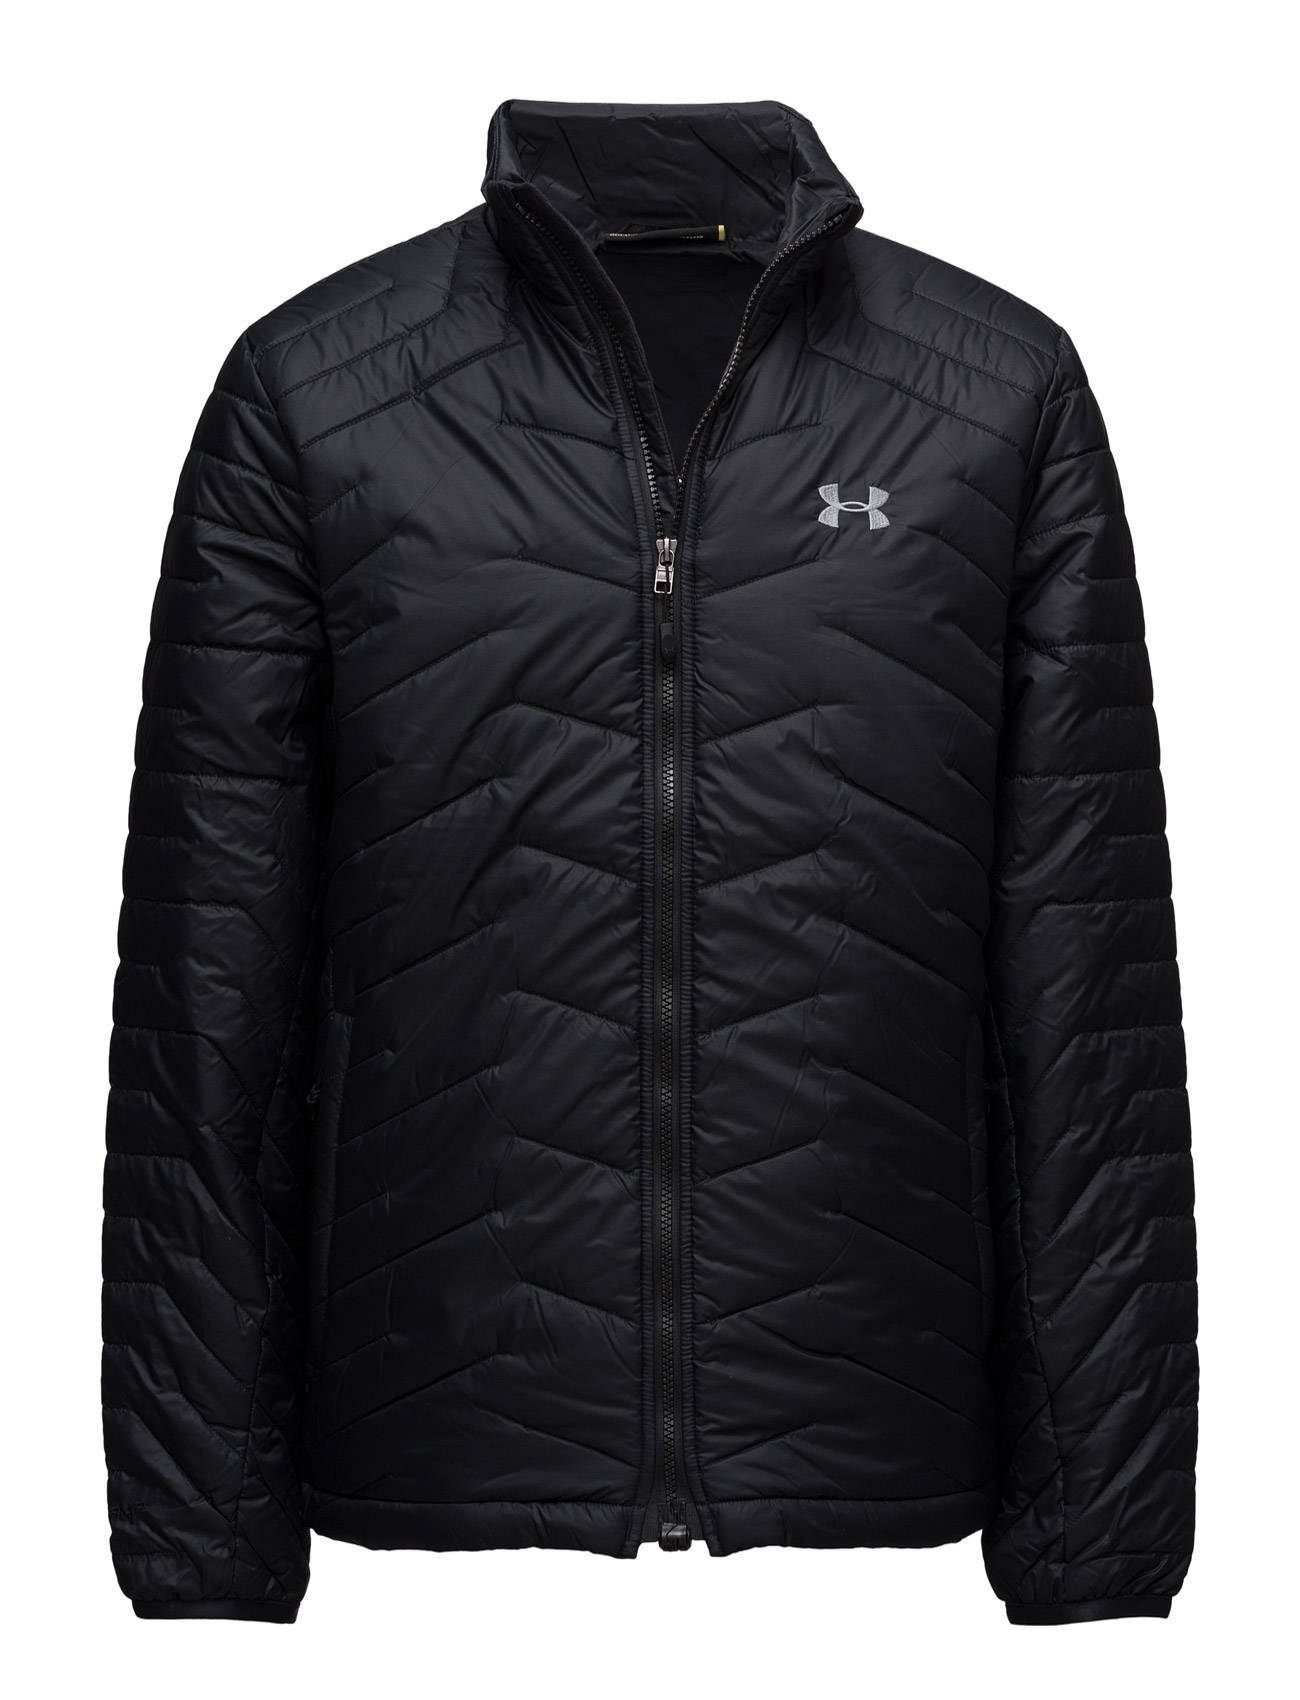 Under Armour Ua Cgr Jacket